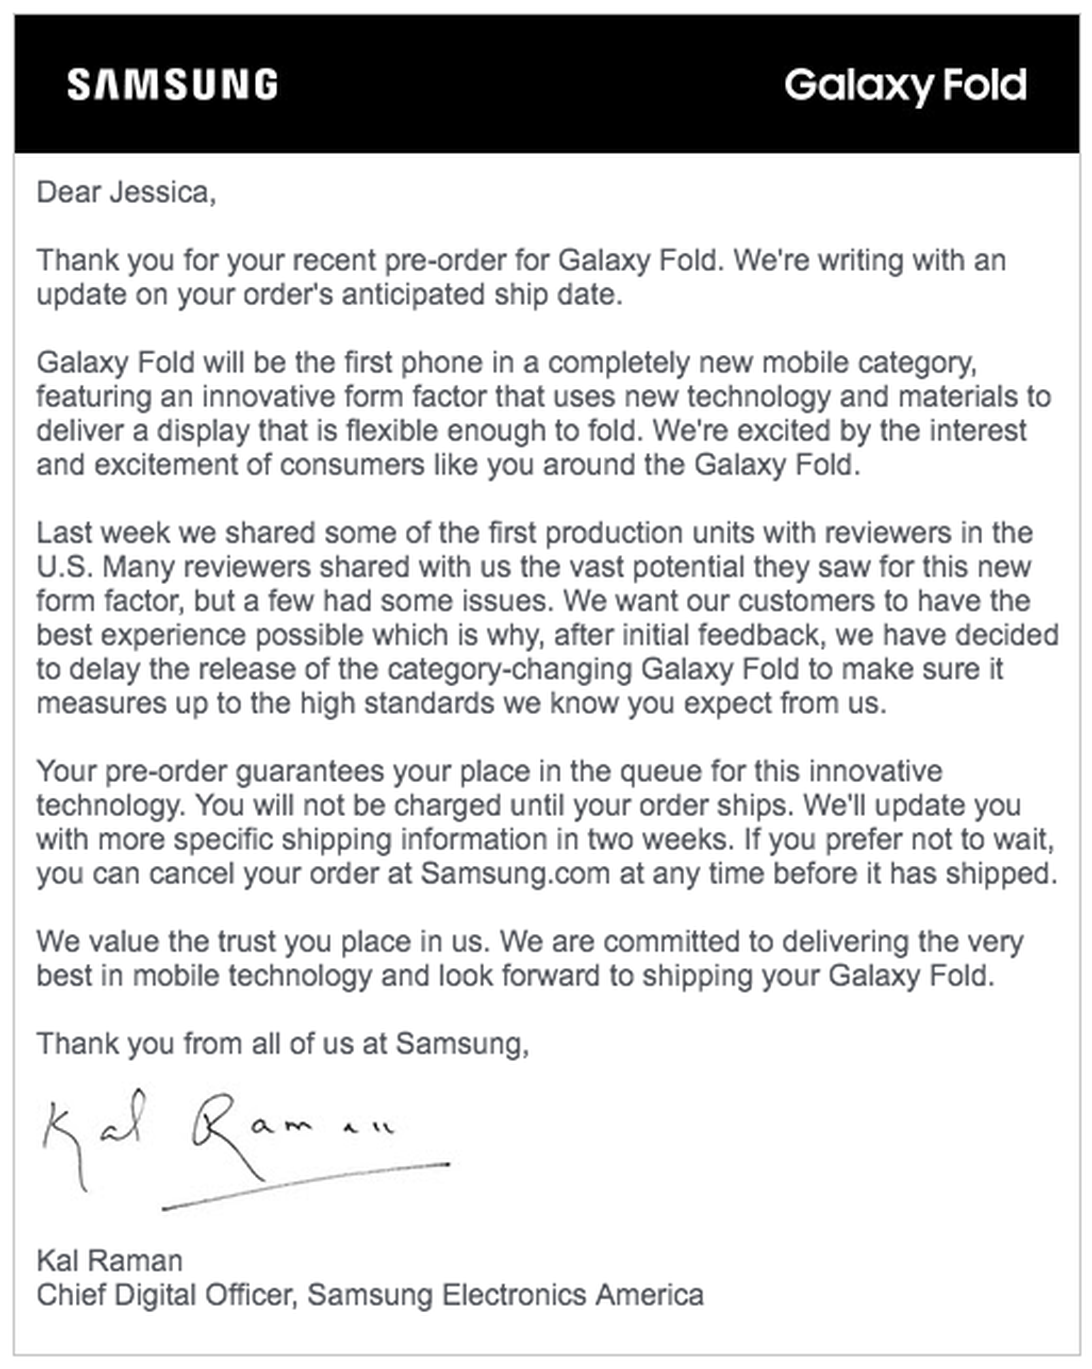 Galaxy Fold - Samsung email to preorder customers